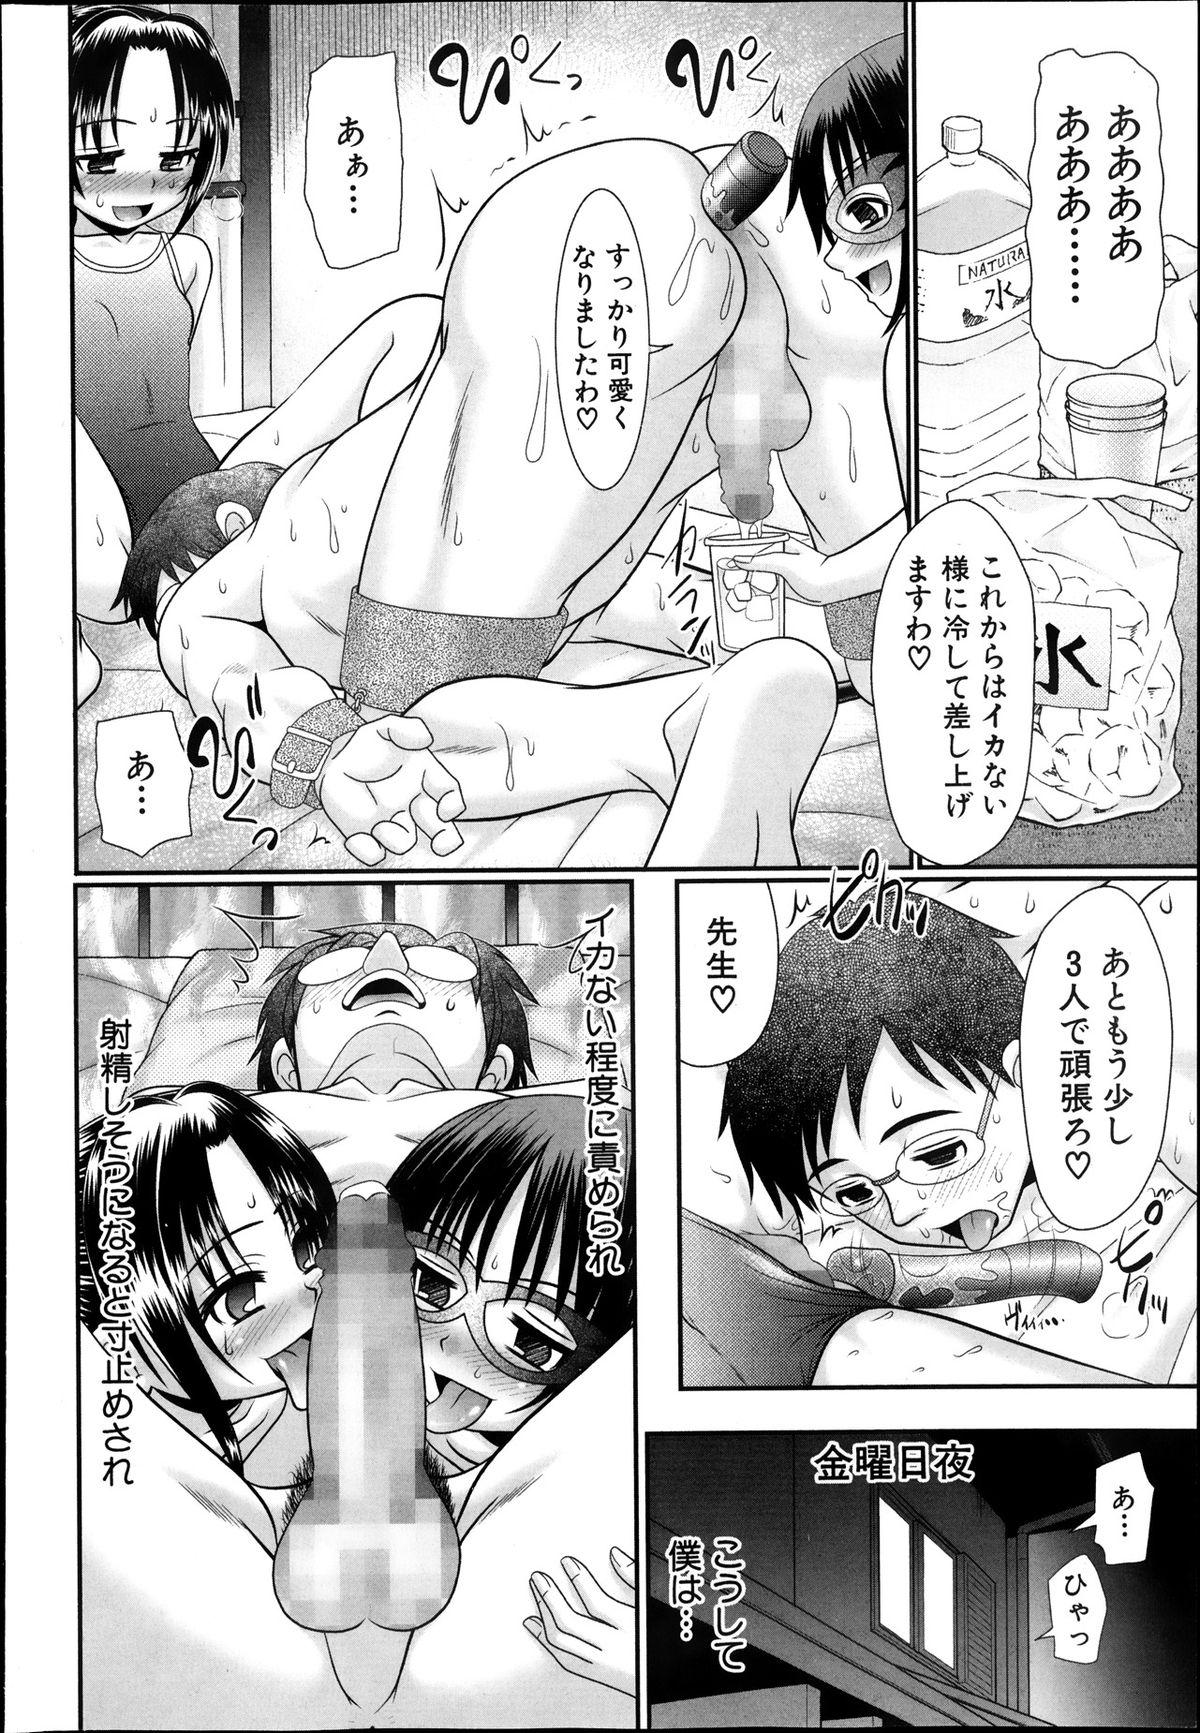 BUSTER COMIC 2013-11 352